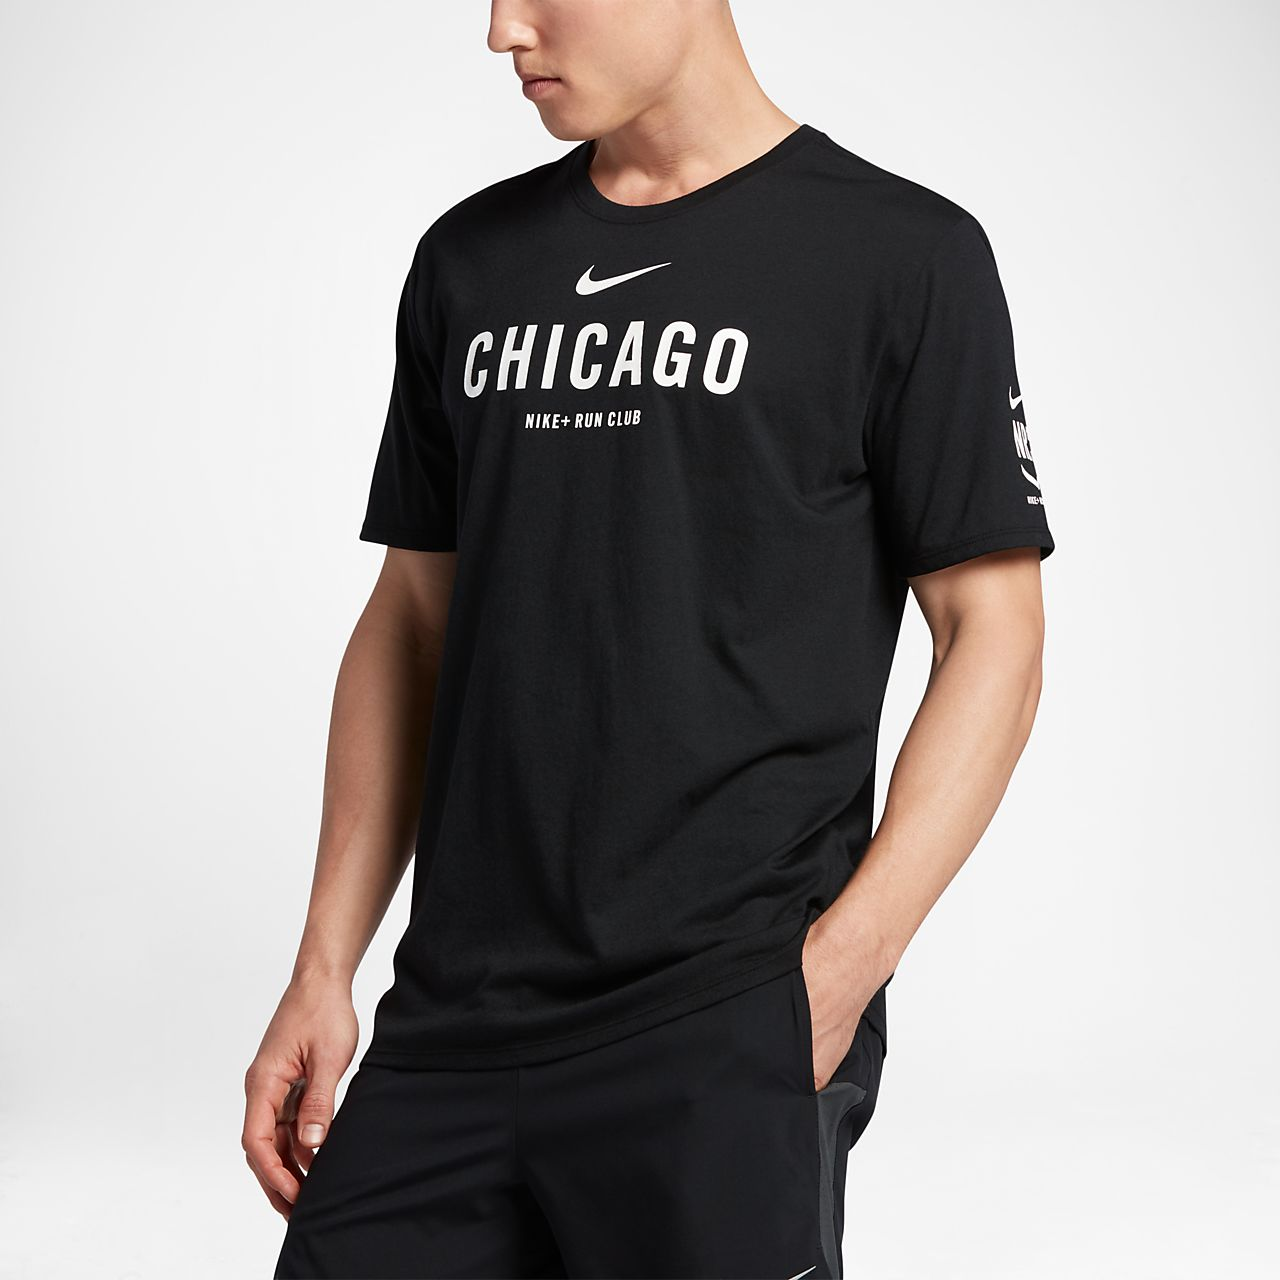 ... Nike Dri-FIT Run Club (Chicago) Men's T-Shirt